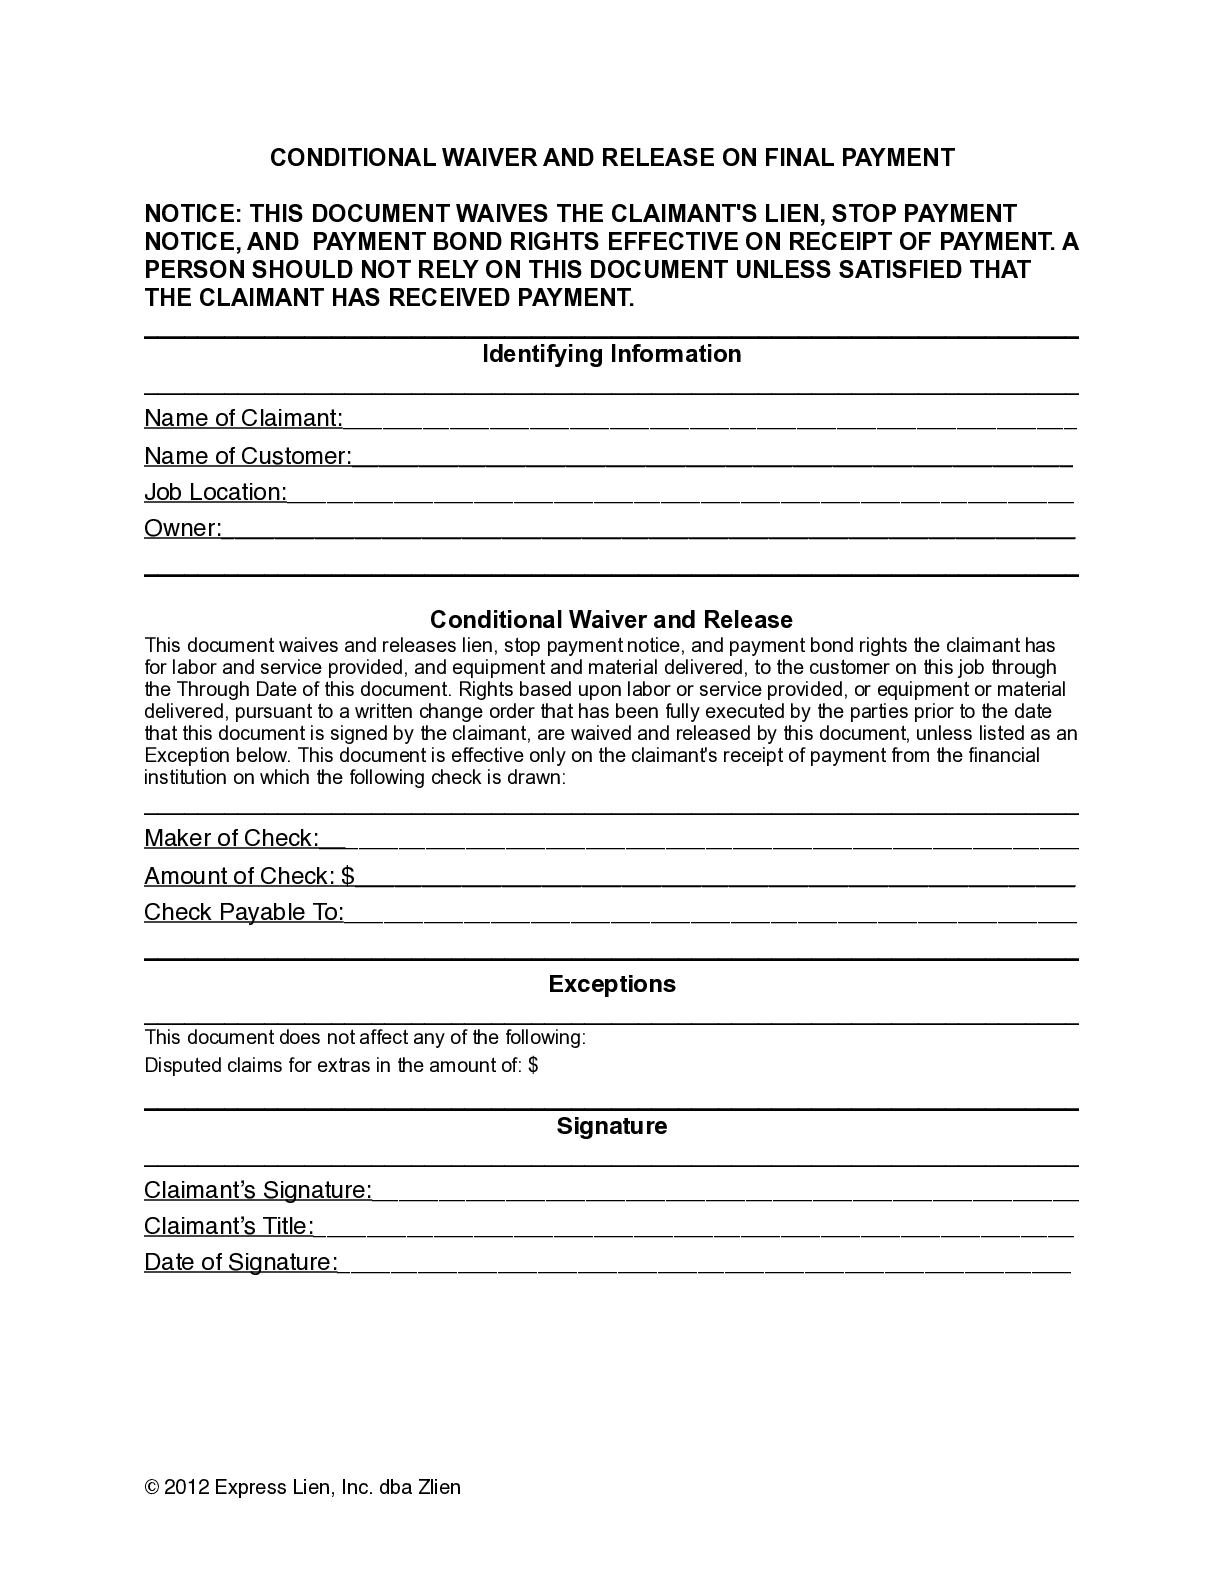 Idaho Final Conditional Lien Waiver Form - free from